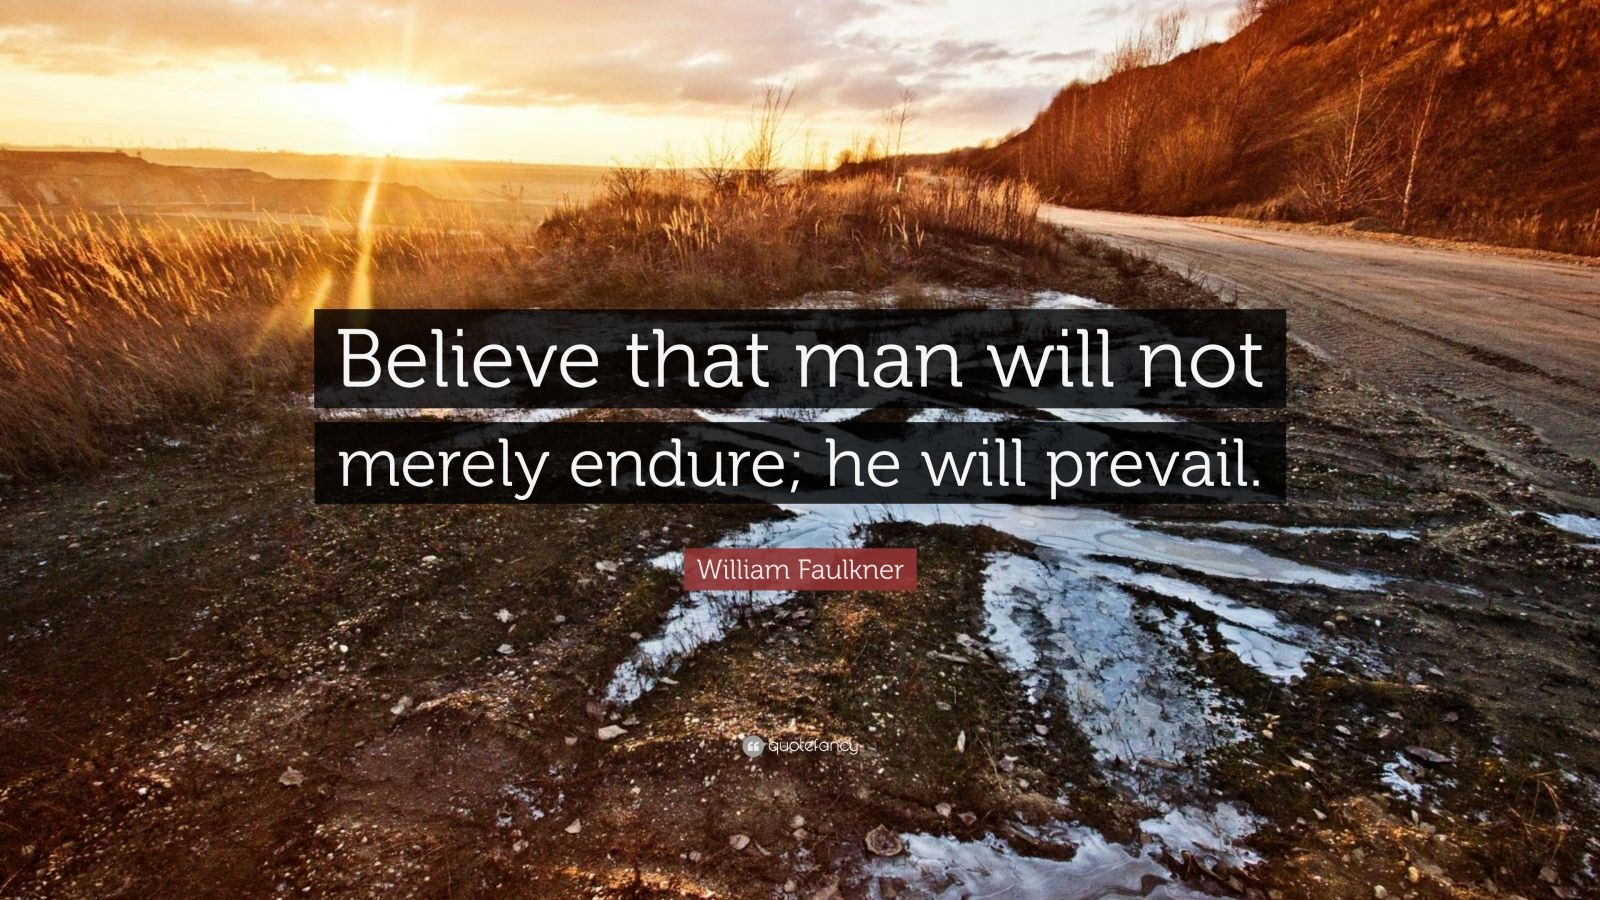 """William Faulkner Quote: """"Believe that man will not merely endure; he will prevail."""""""